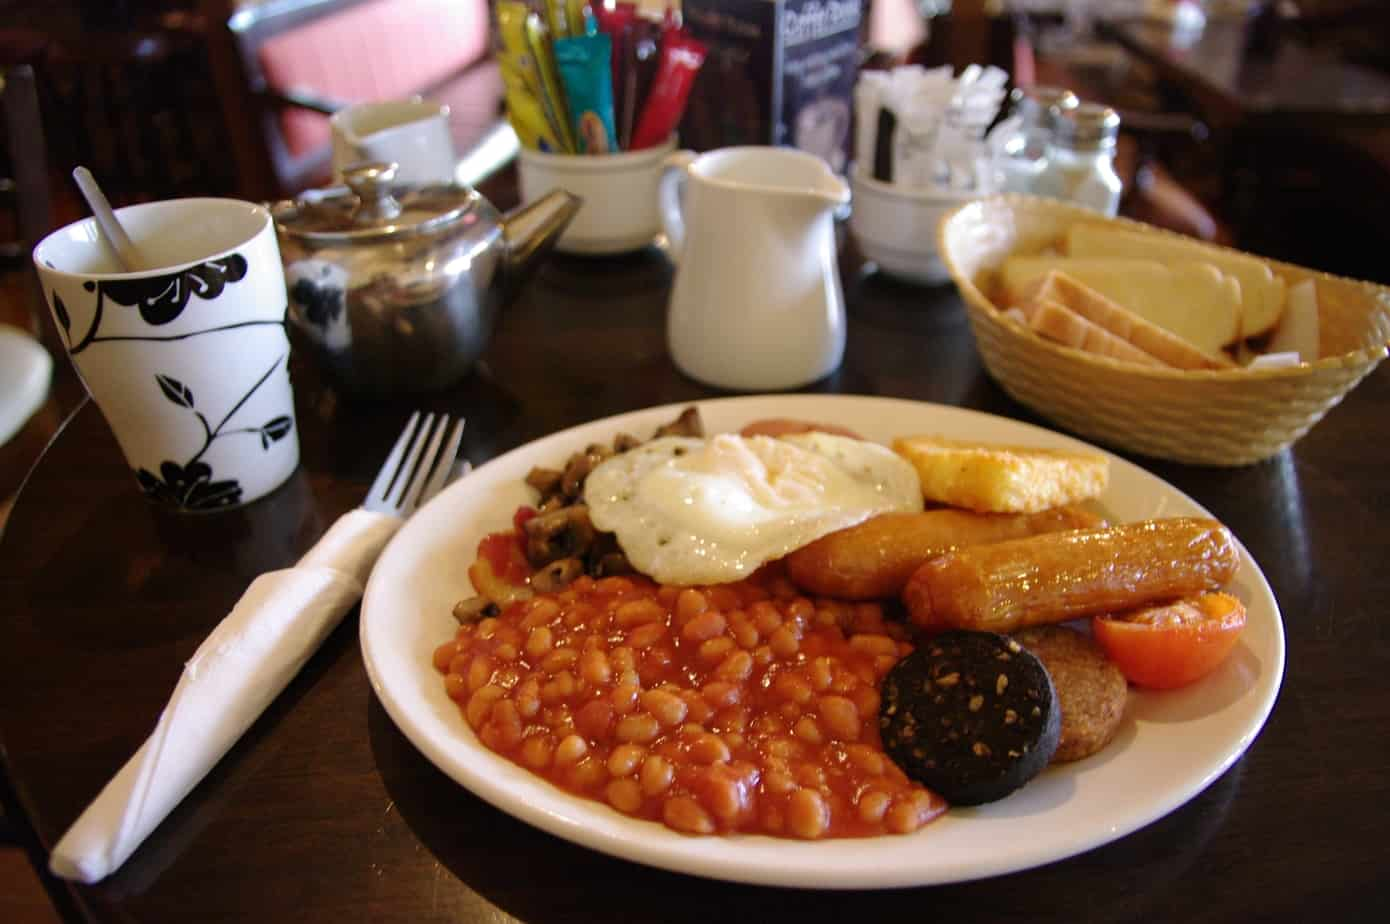 Full Irish breakfast in Kilkenny